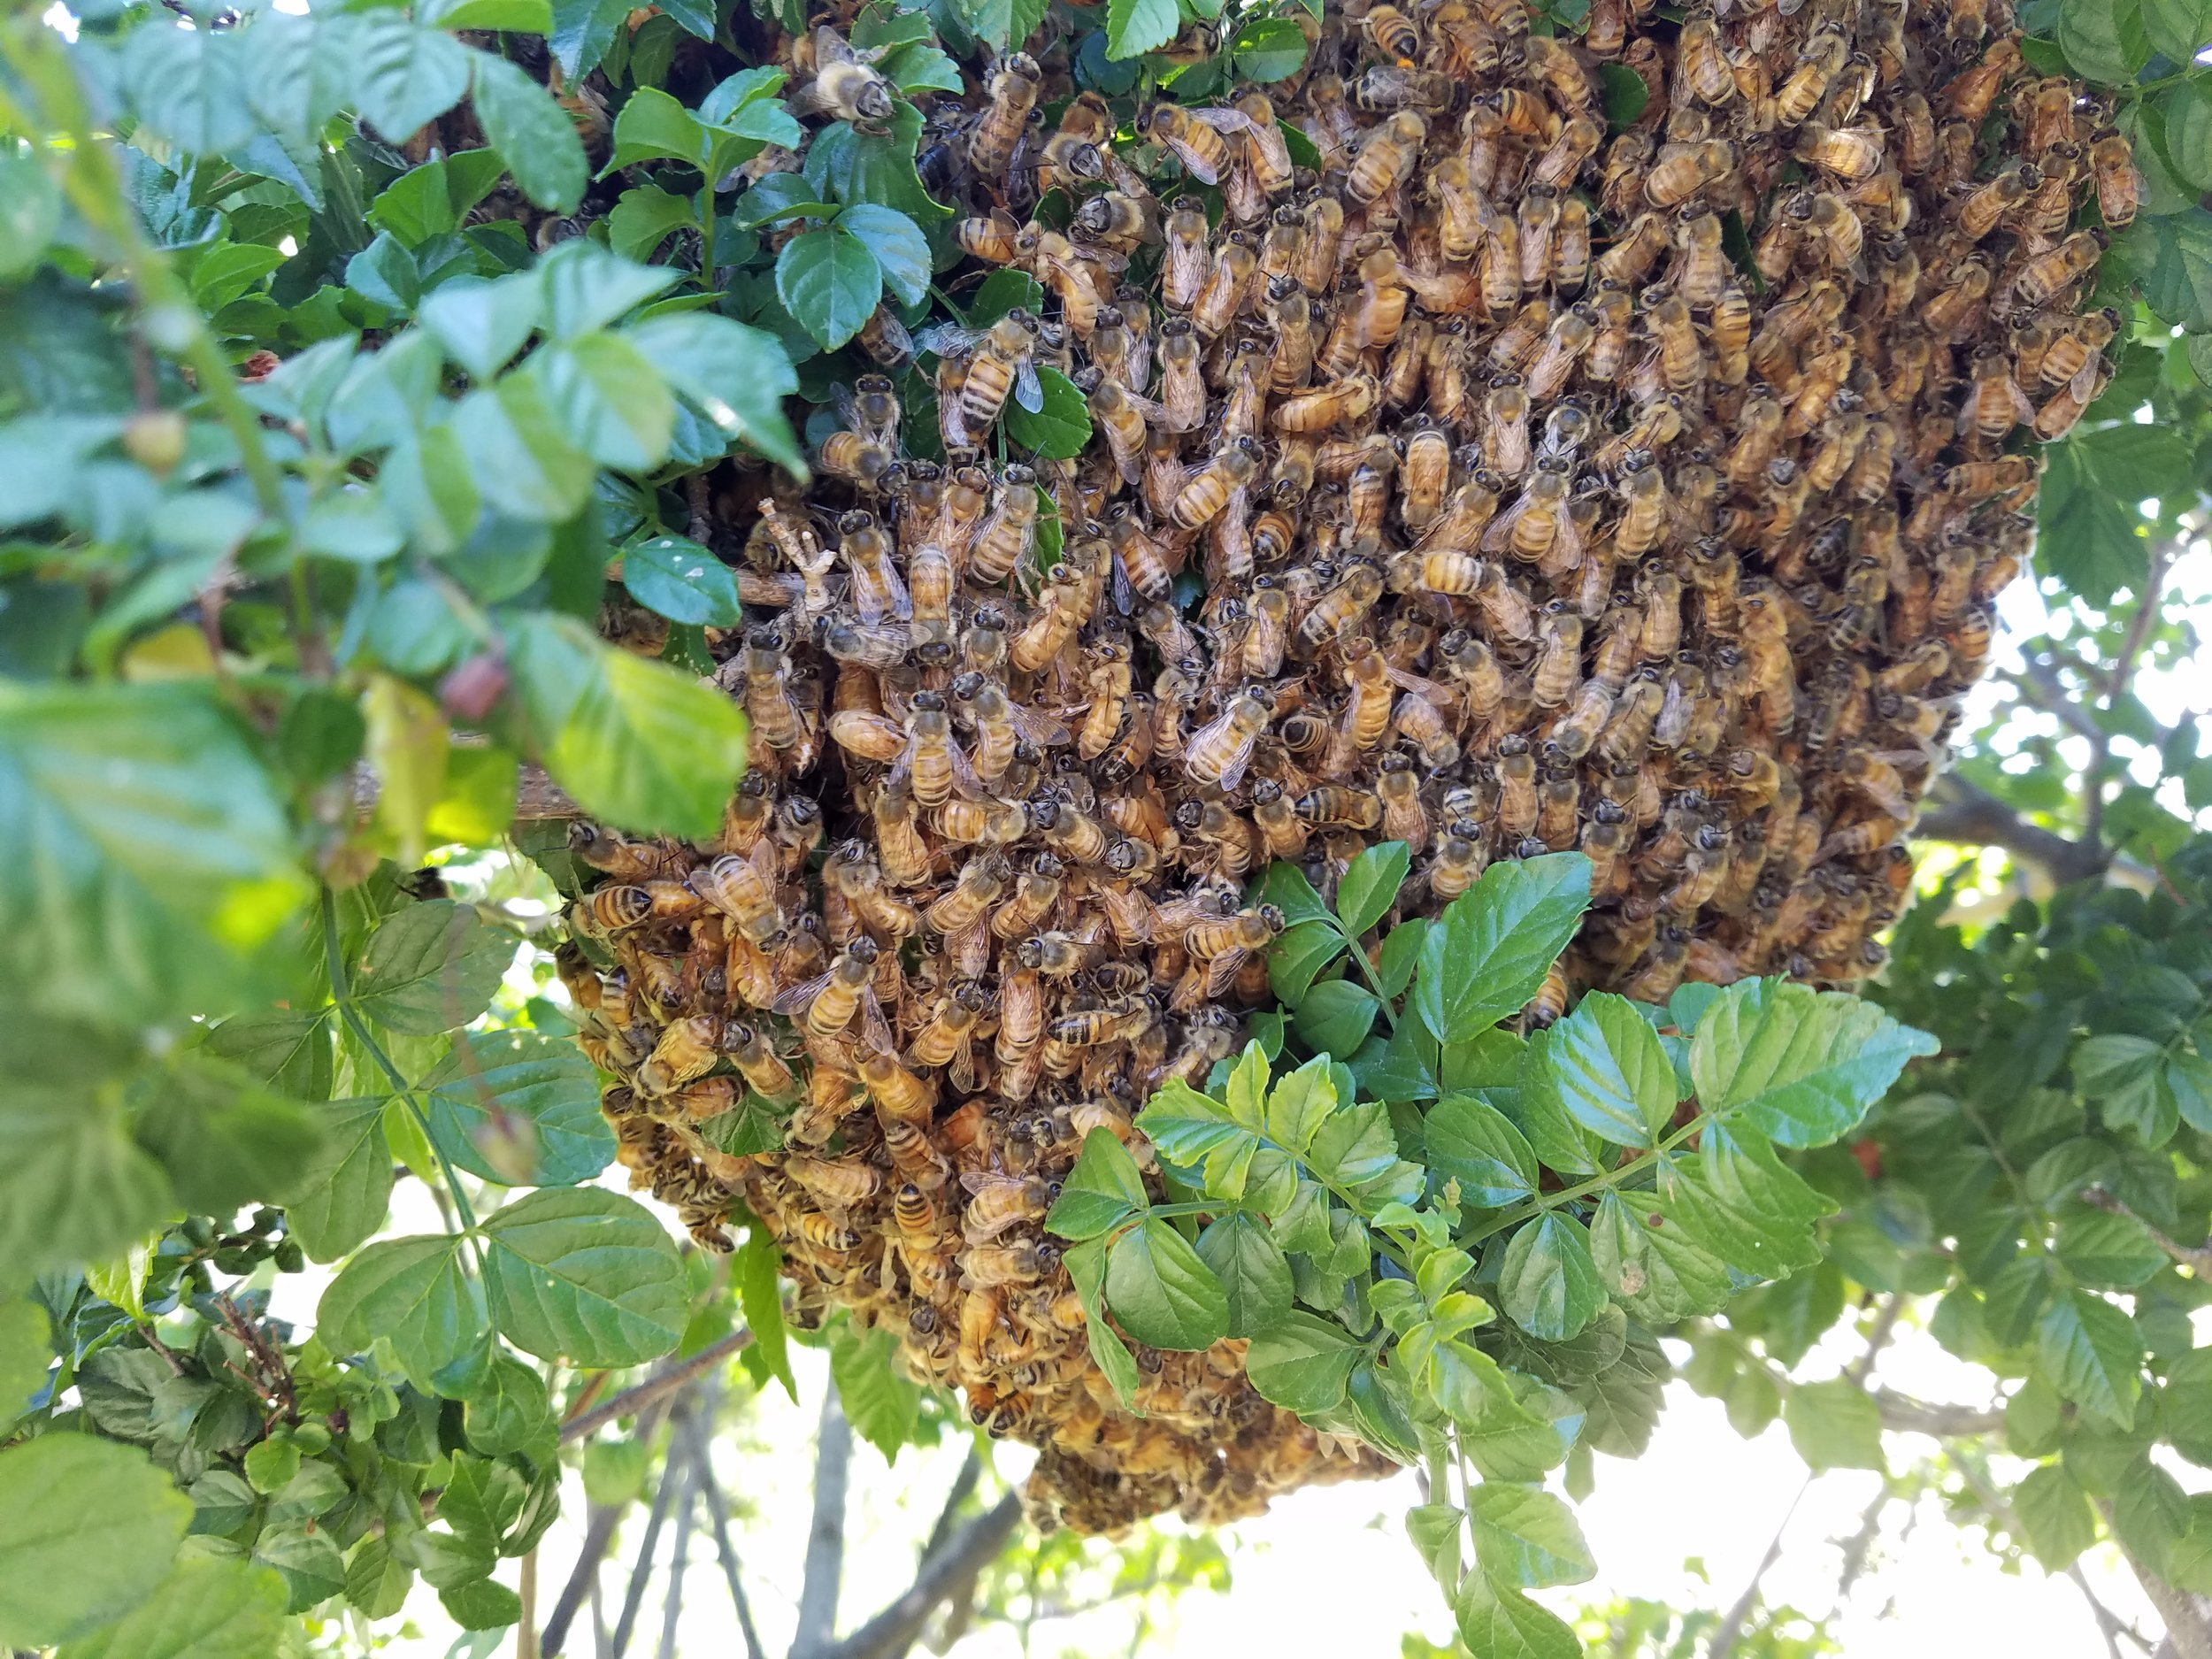 Honey Bees Swarm In Tree